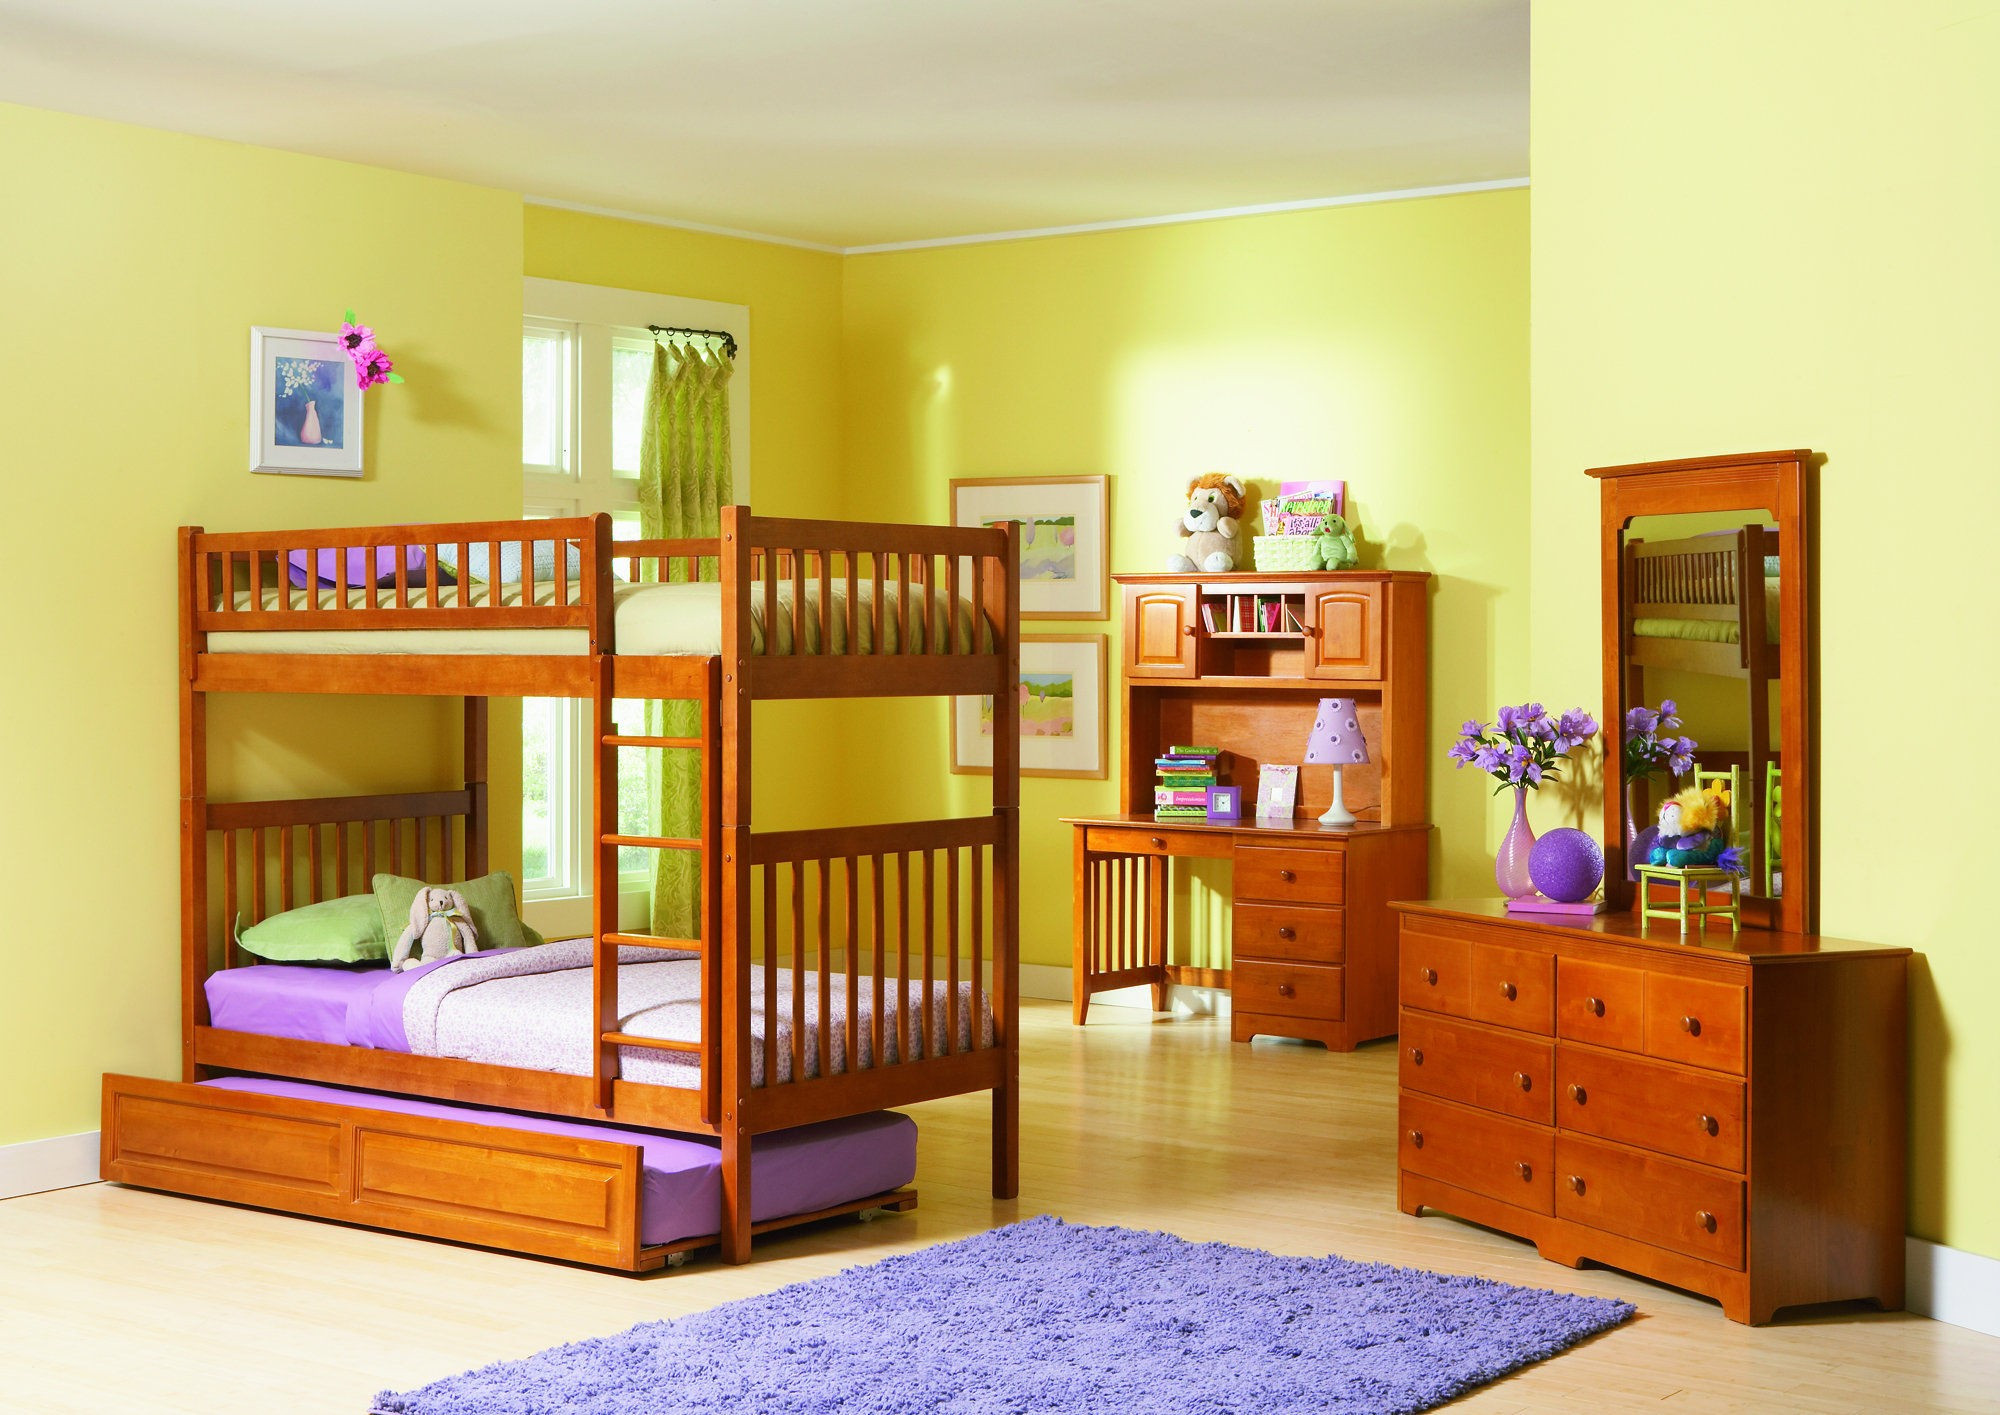 Best ideas about Kid Bedroom Sets . Save or Pin Bedroom amazing cheap childrens bedroom sets Kids Bedroom Now.